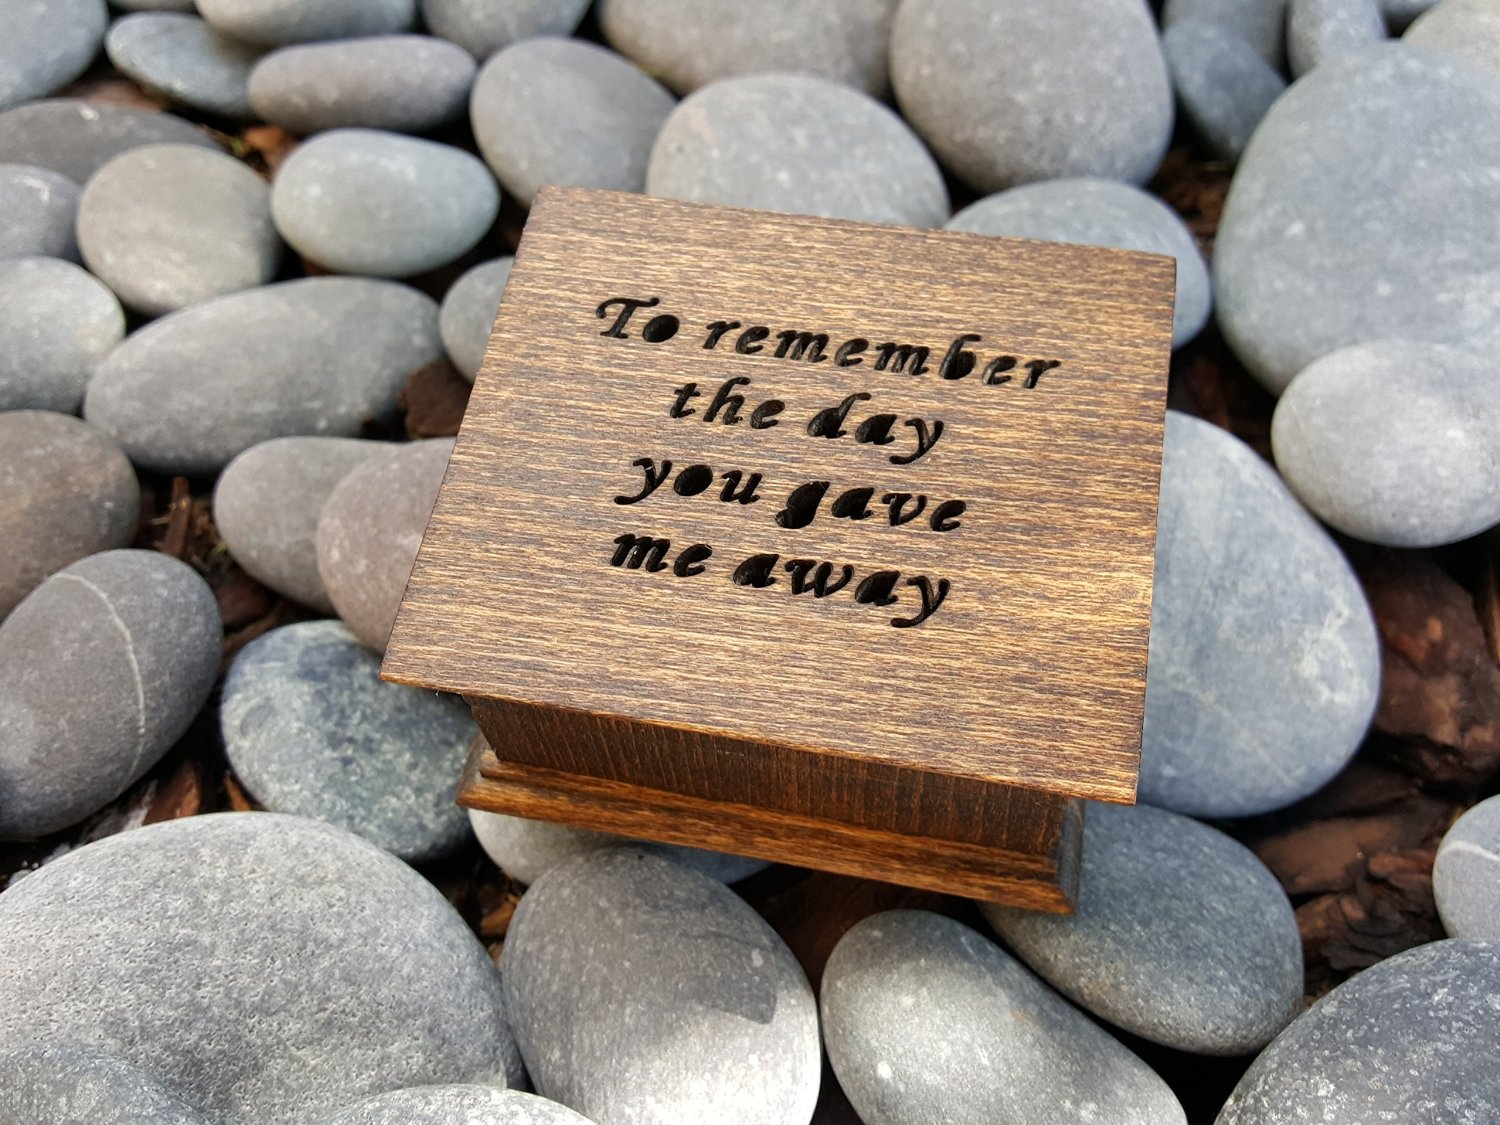 Music box handmade music box custom made music box To remember the day you gave me away simplycoolgifts Father of Bride gift gift for dad